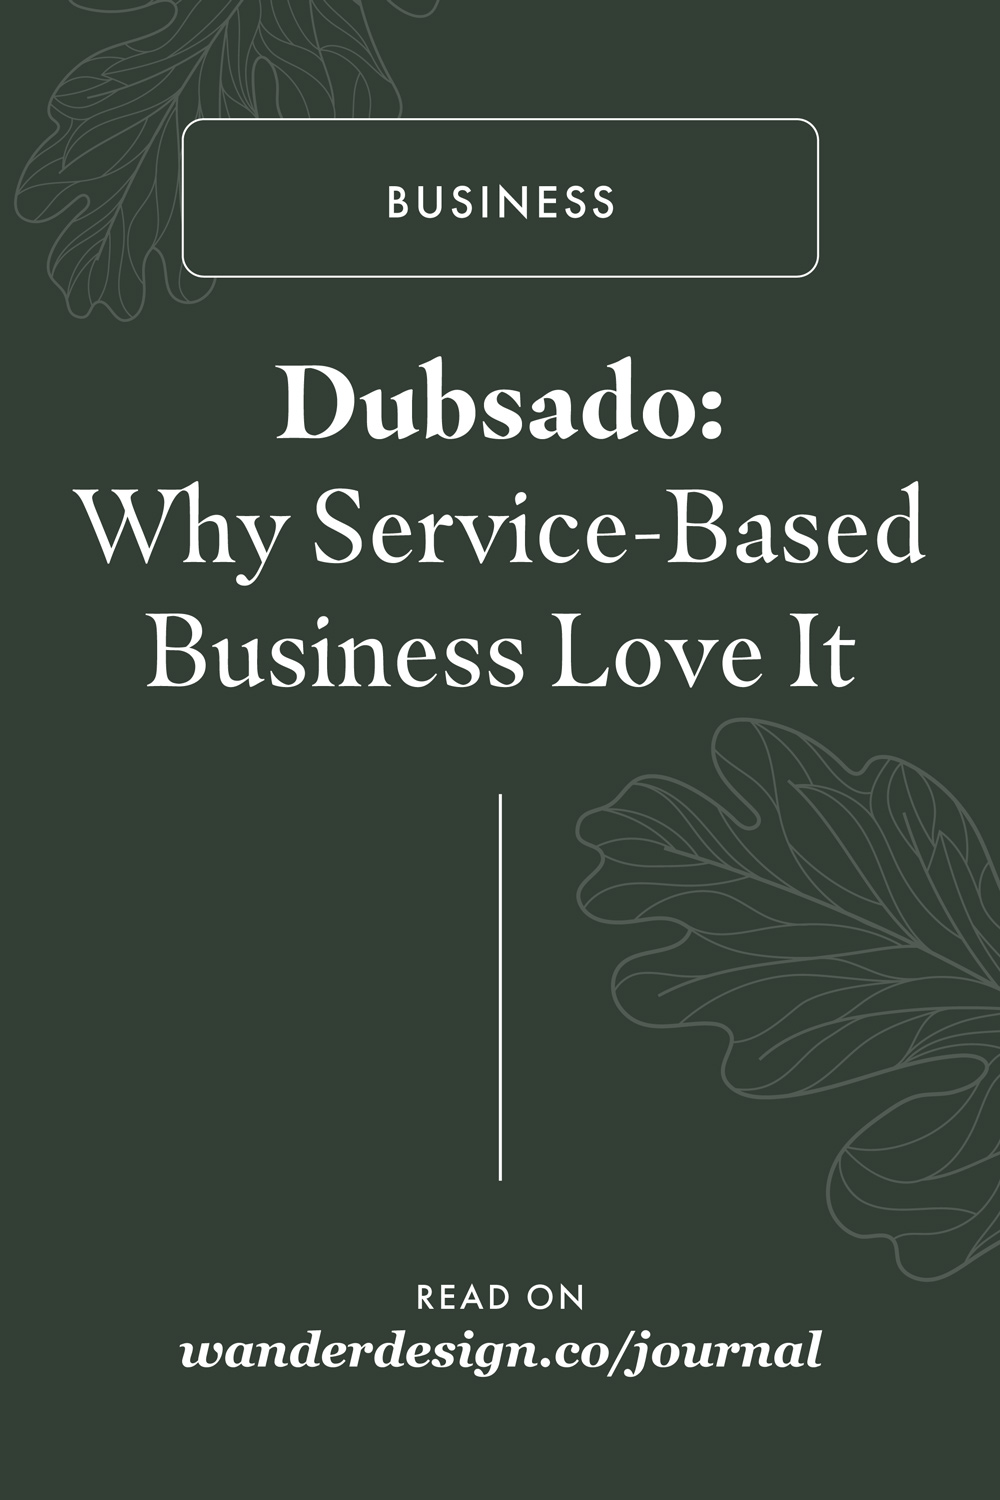 Dubsado: Why Service-Based Business Love It